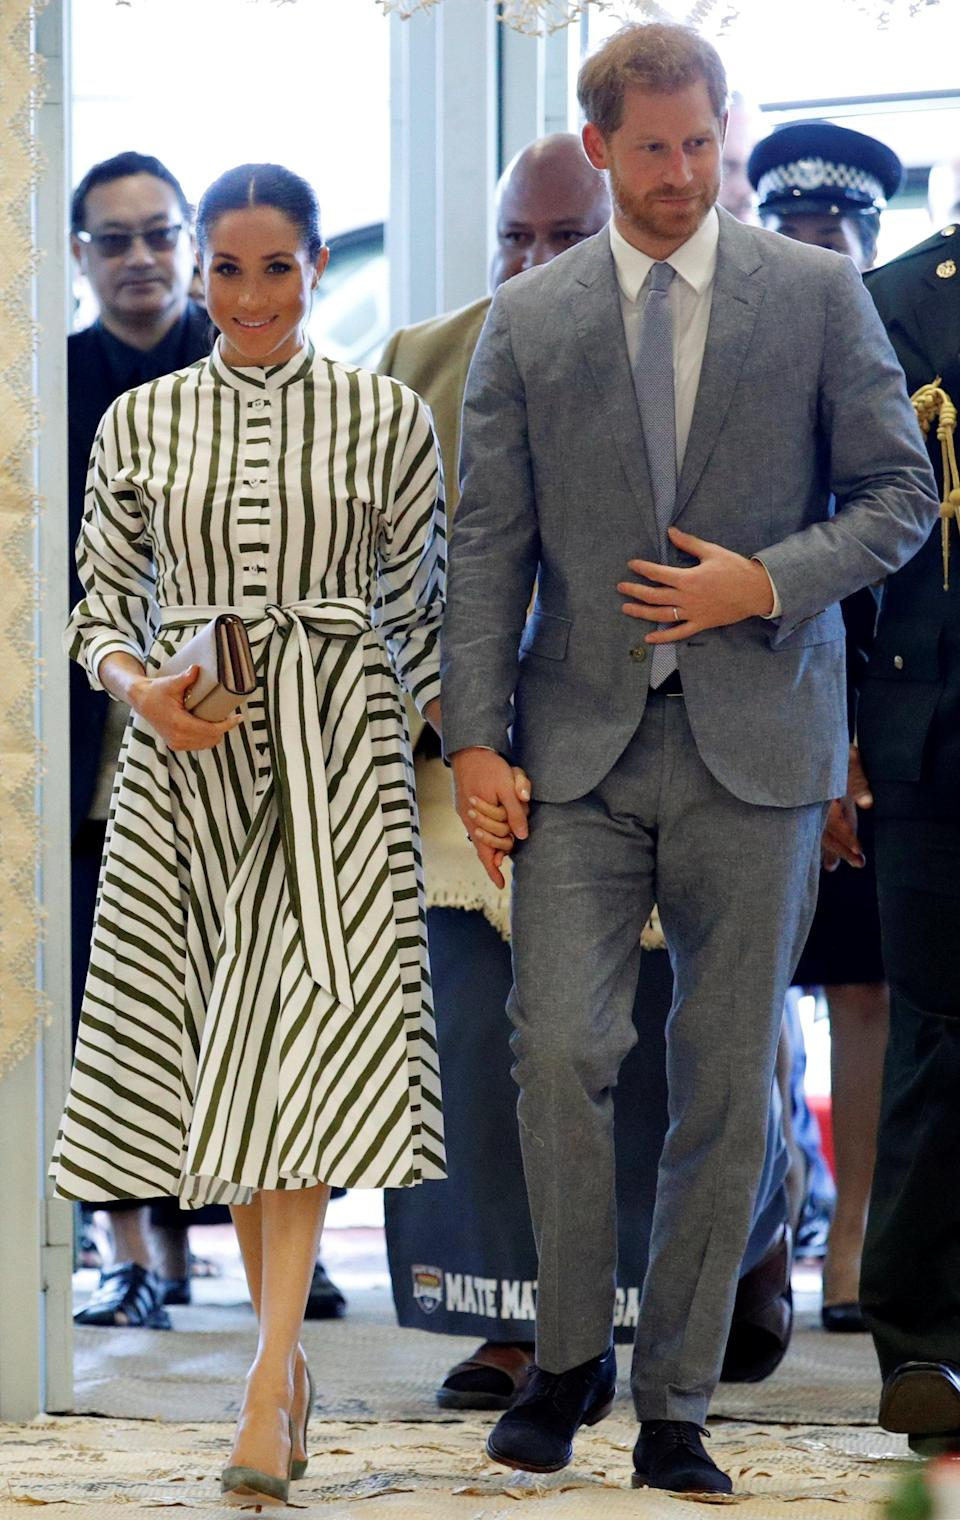 <p>On October 26, the Duke and Duchess of Sussex met with Tonga Prime Minister Akilisi Pohiva. For the occasion, Meghan dressed in a striped midi dress by Martin Grant – a label she has looked to throughout the tour. She accessorised the daytime look with a Prada clutch, stud earrings from Birks and olive green shoes. <em>[Photo: Getty]</em> </p>